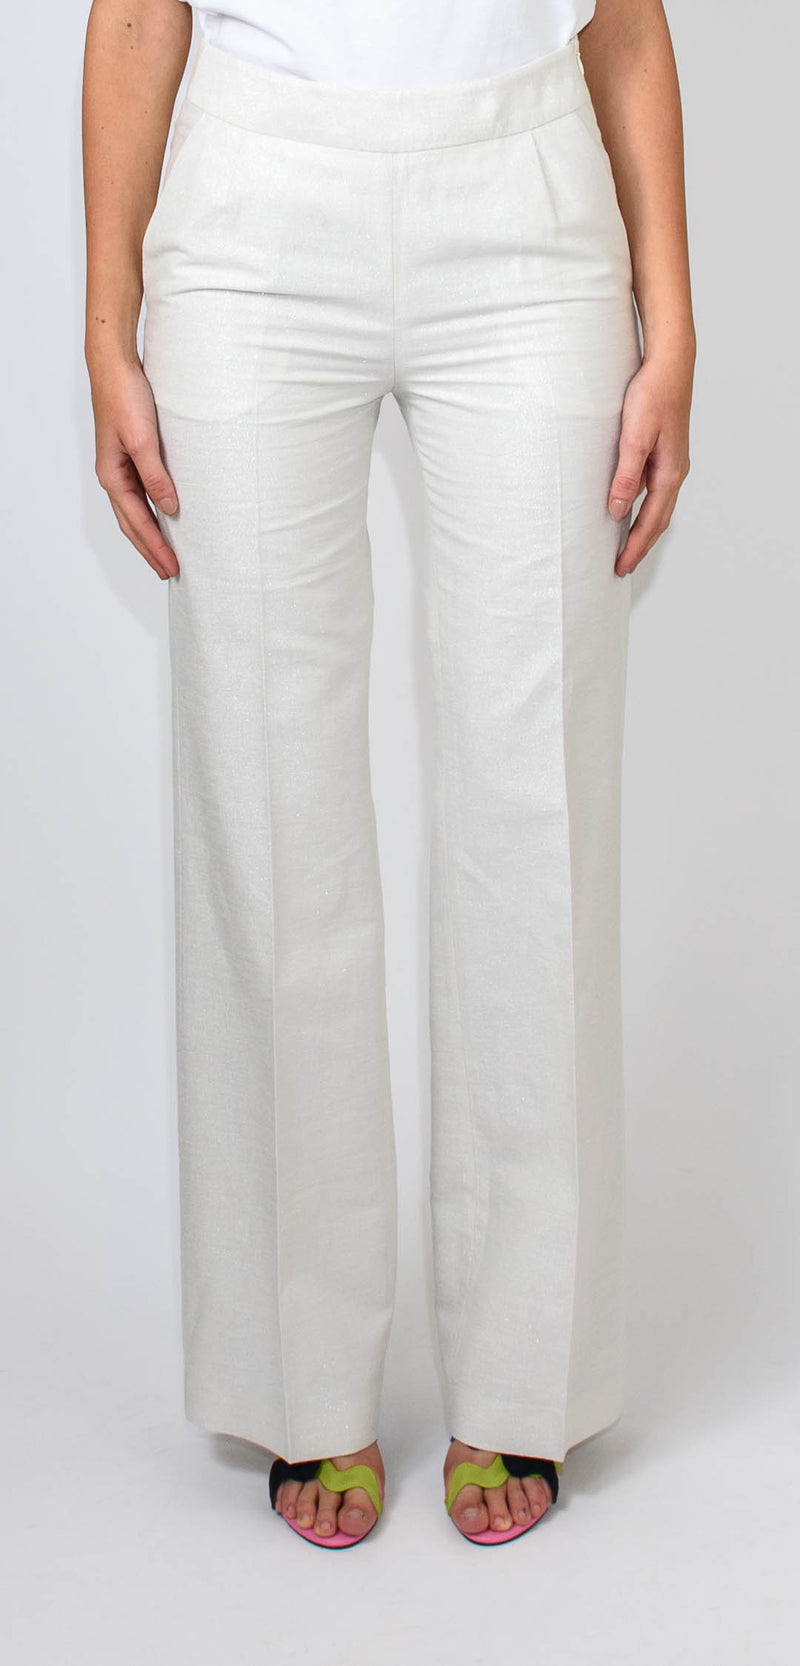 Breras Milano High-waisted white trousers with silver micro glitter